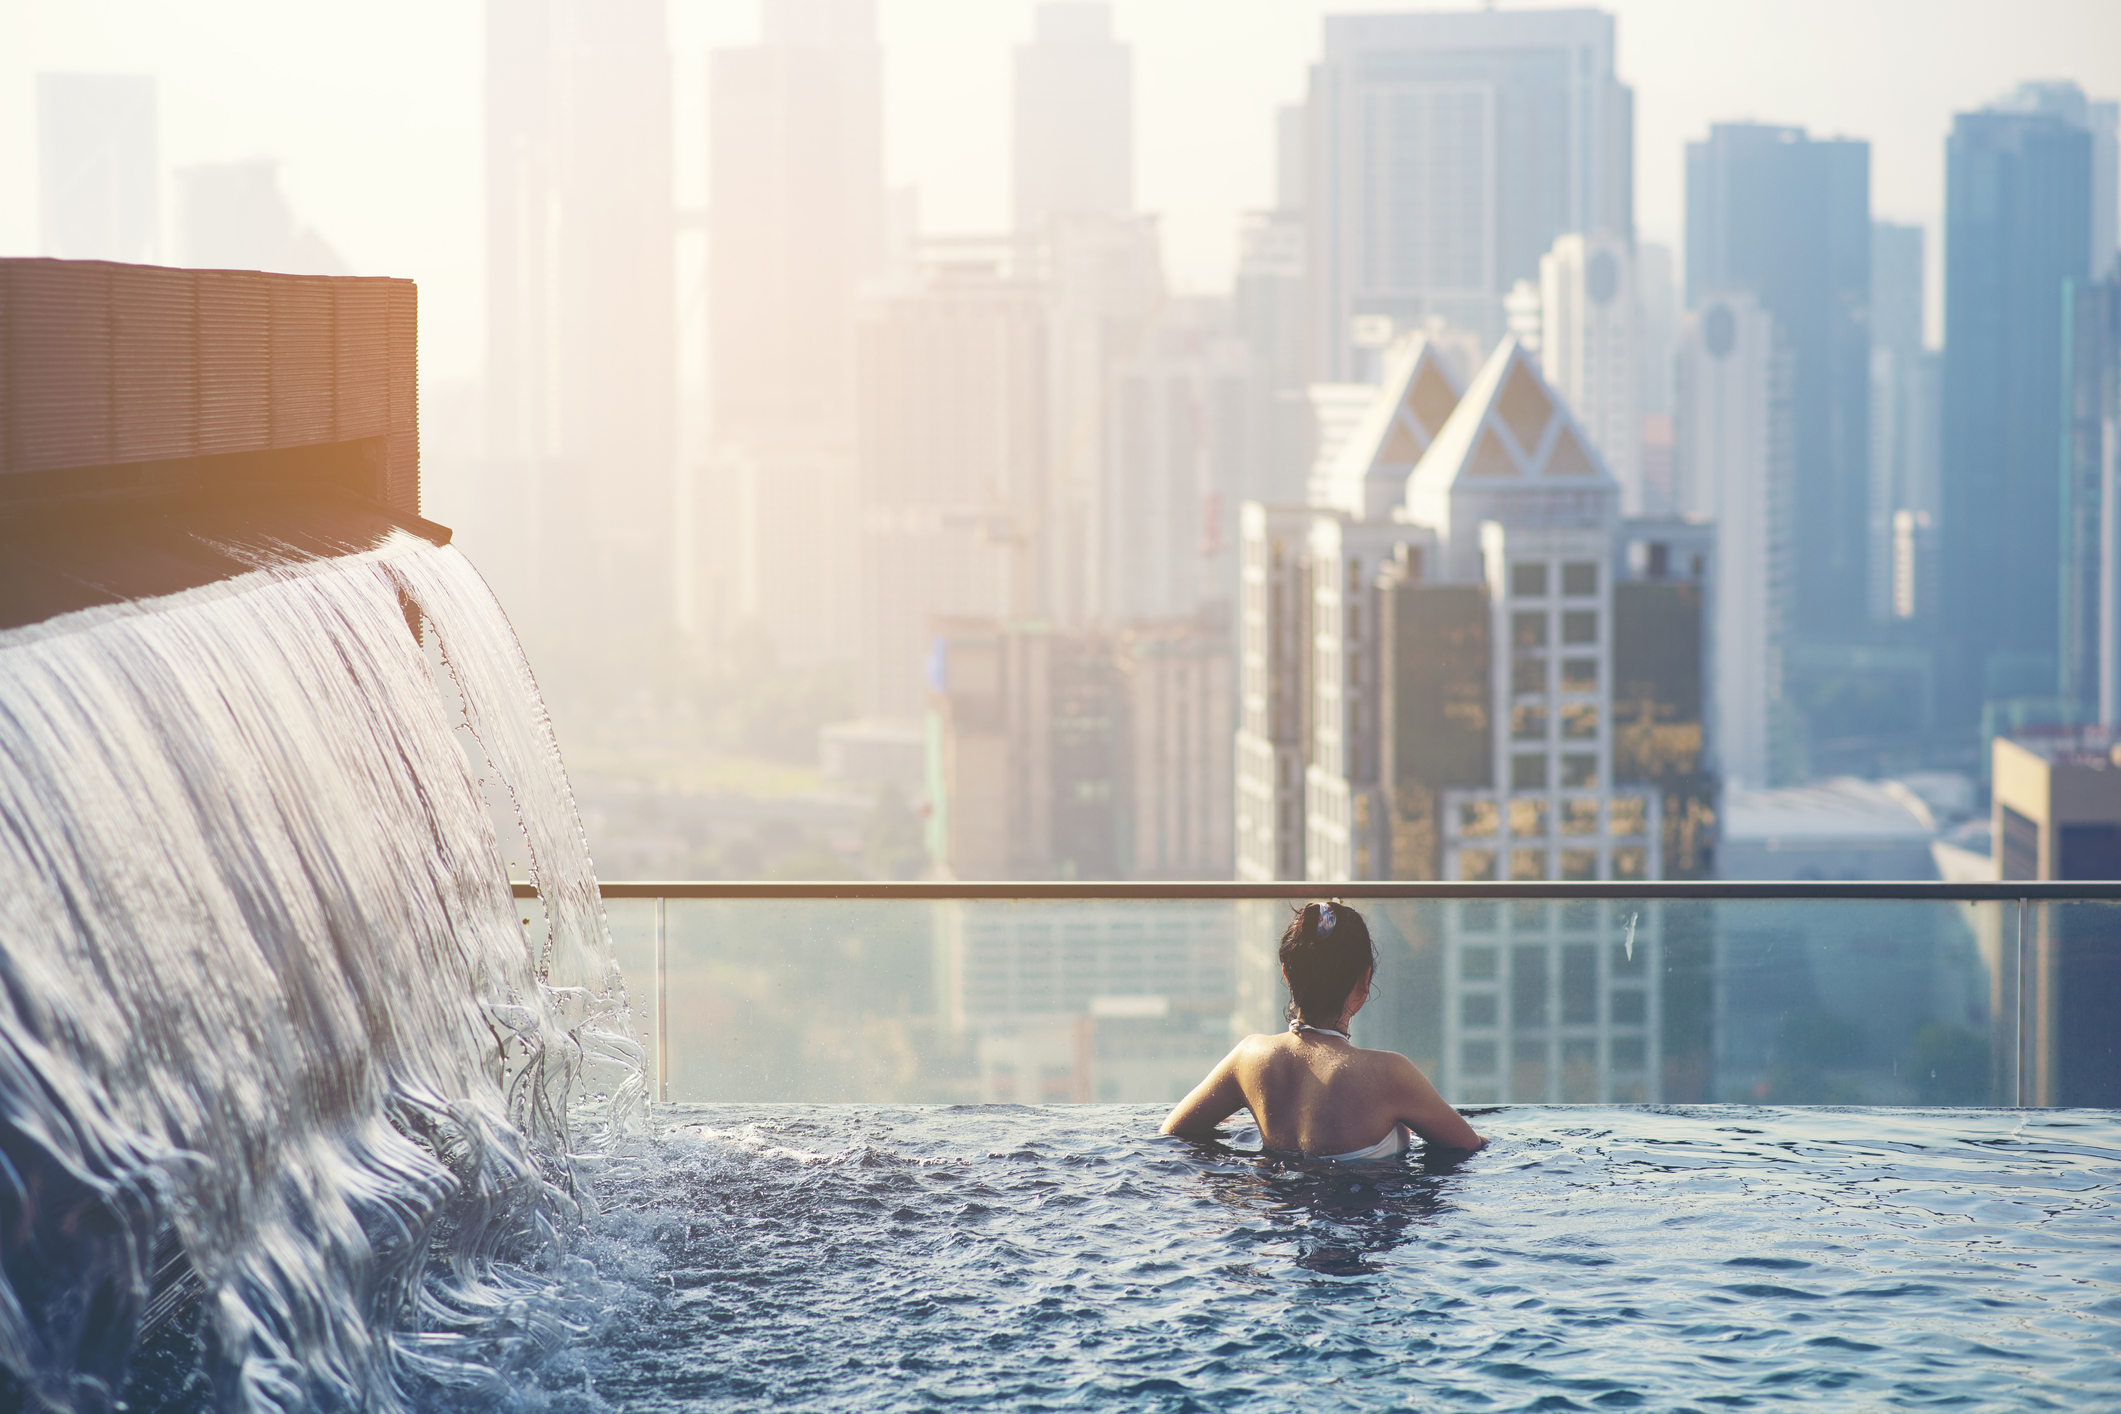 A woman in rooftop pool overlooking a city.